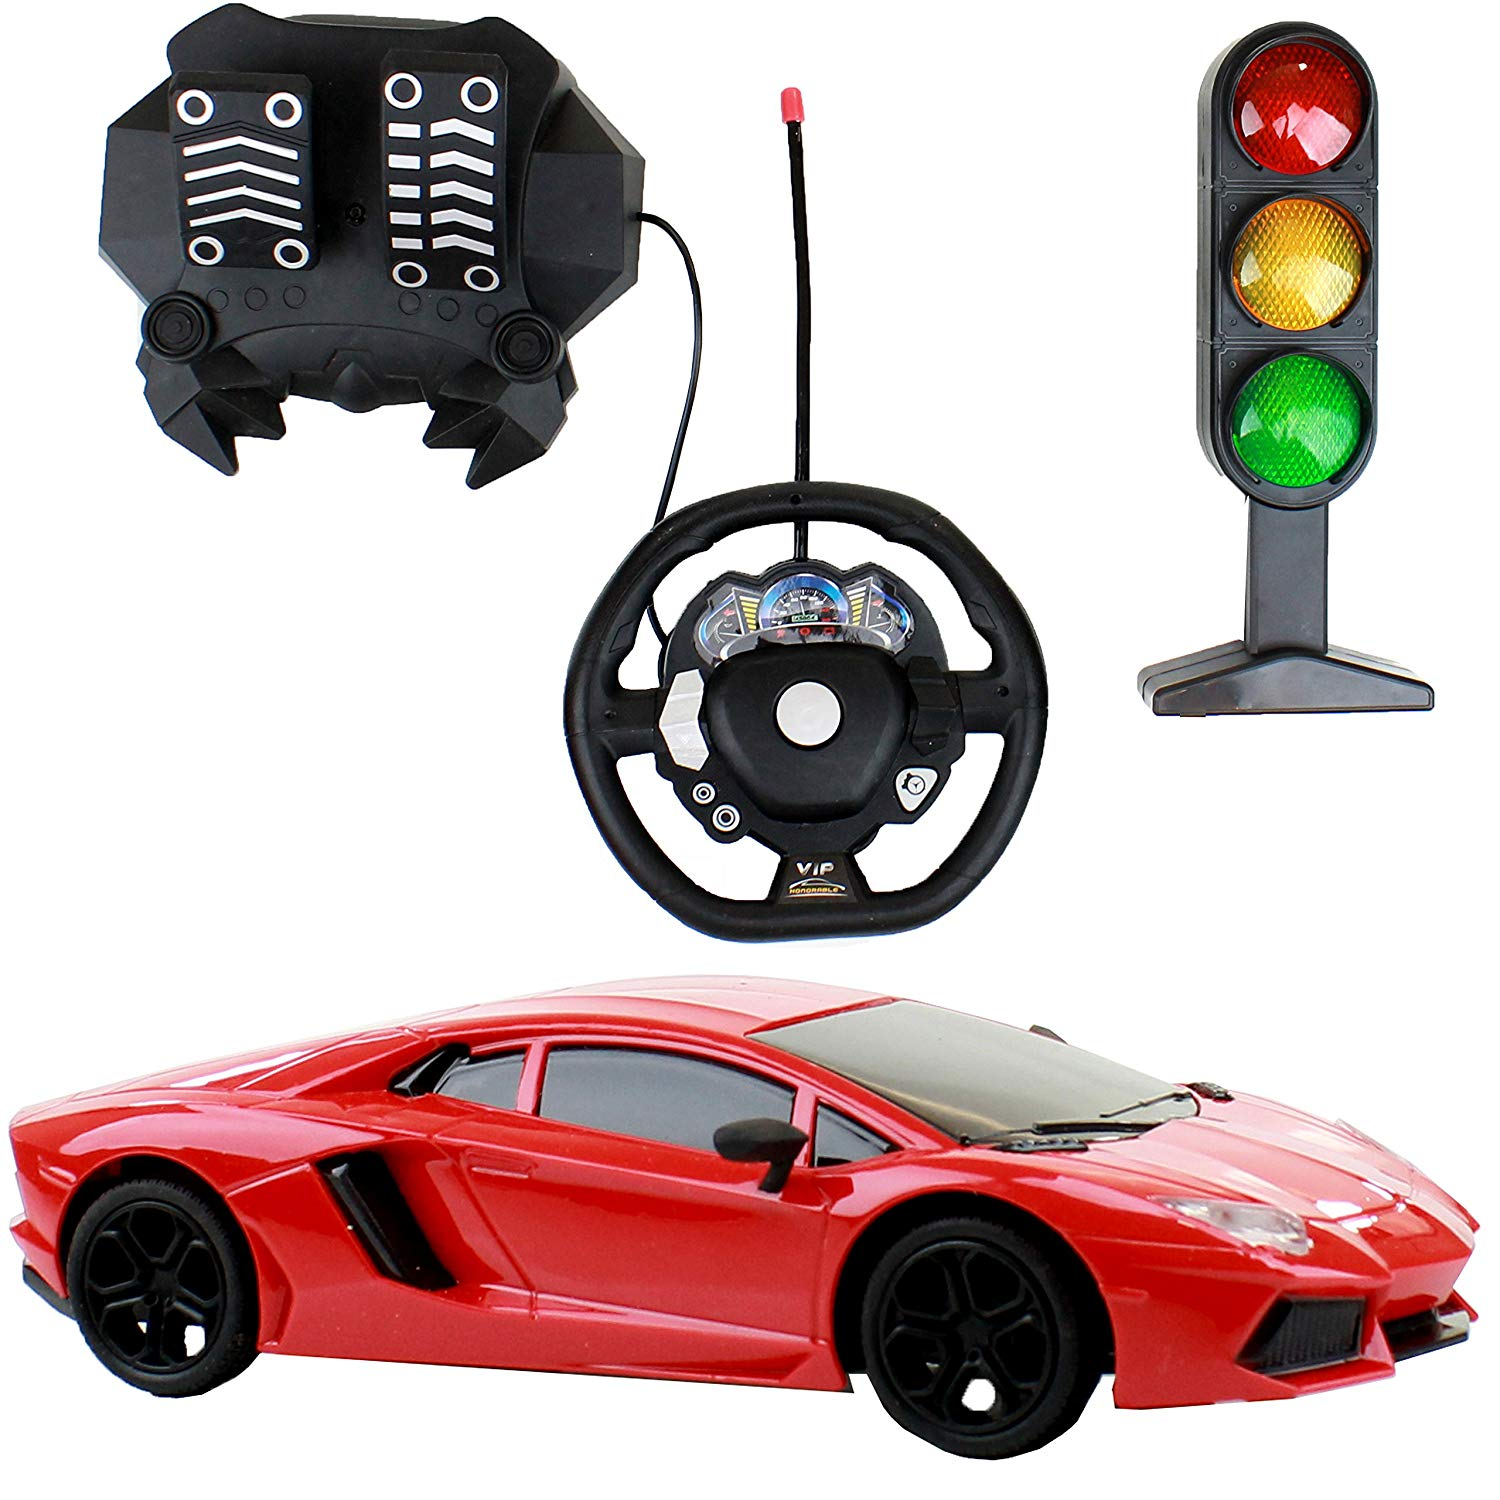 1:14 Remote Control Car with Foot Pedal and Traffic Light, Rechargeable Battery